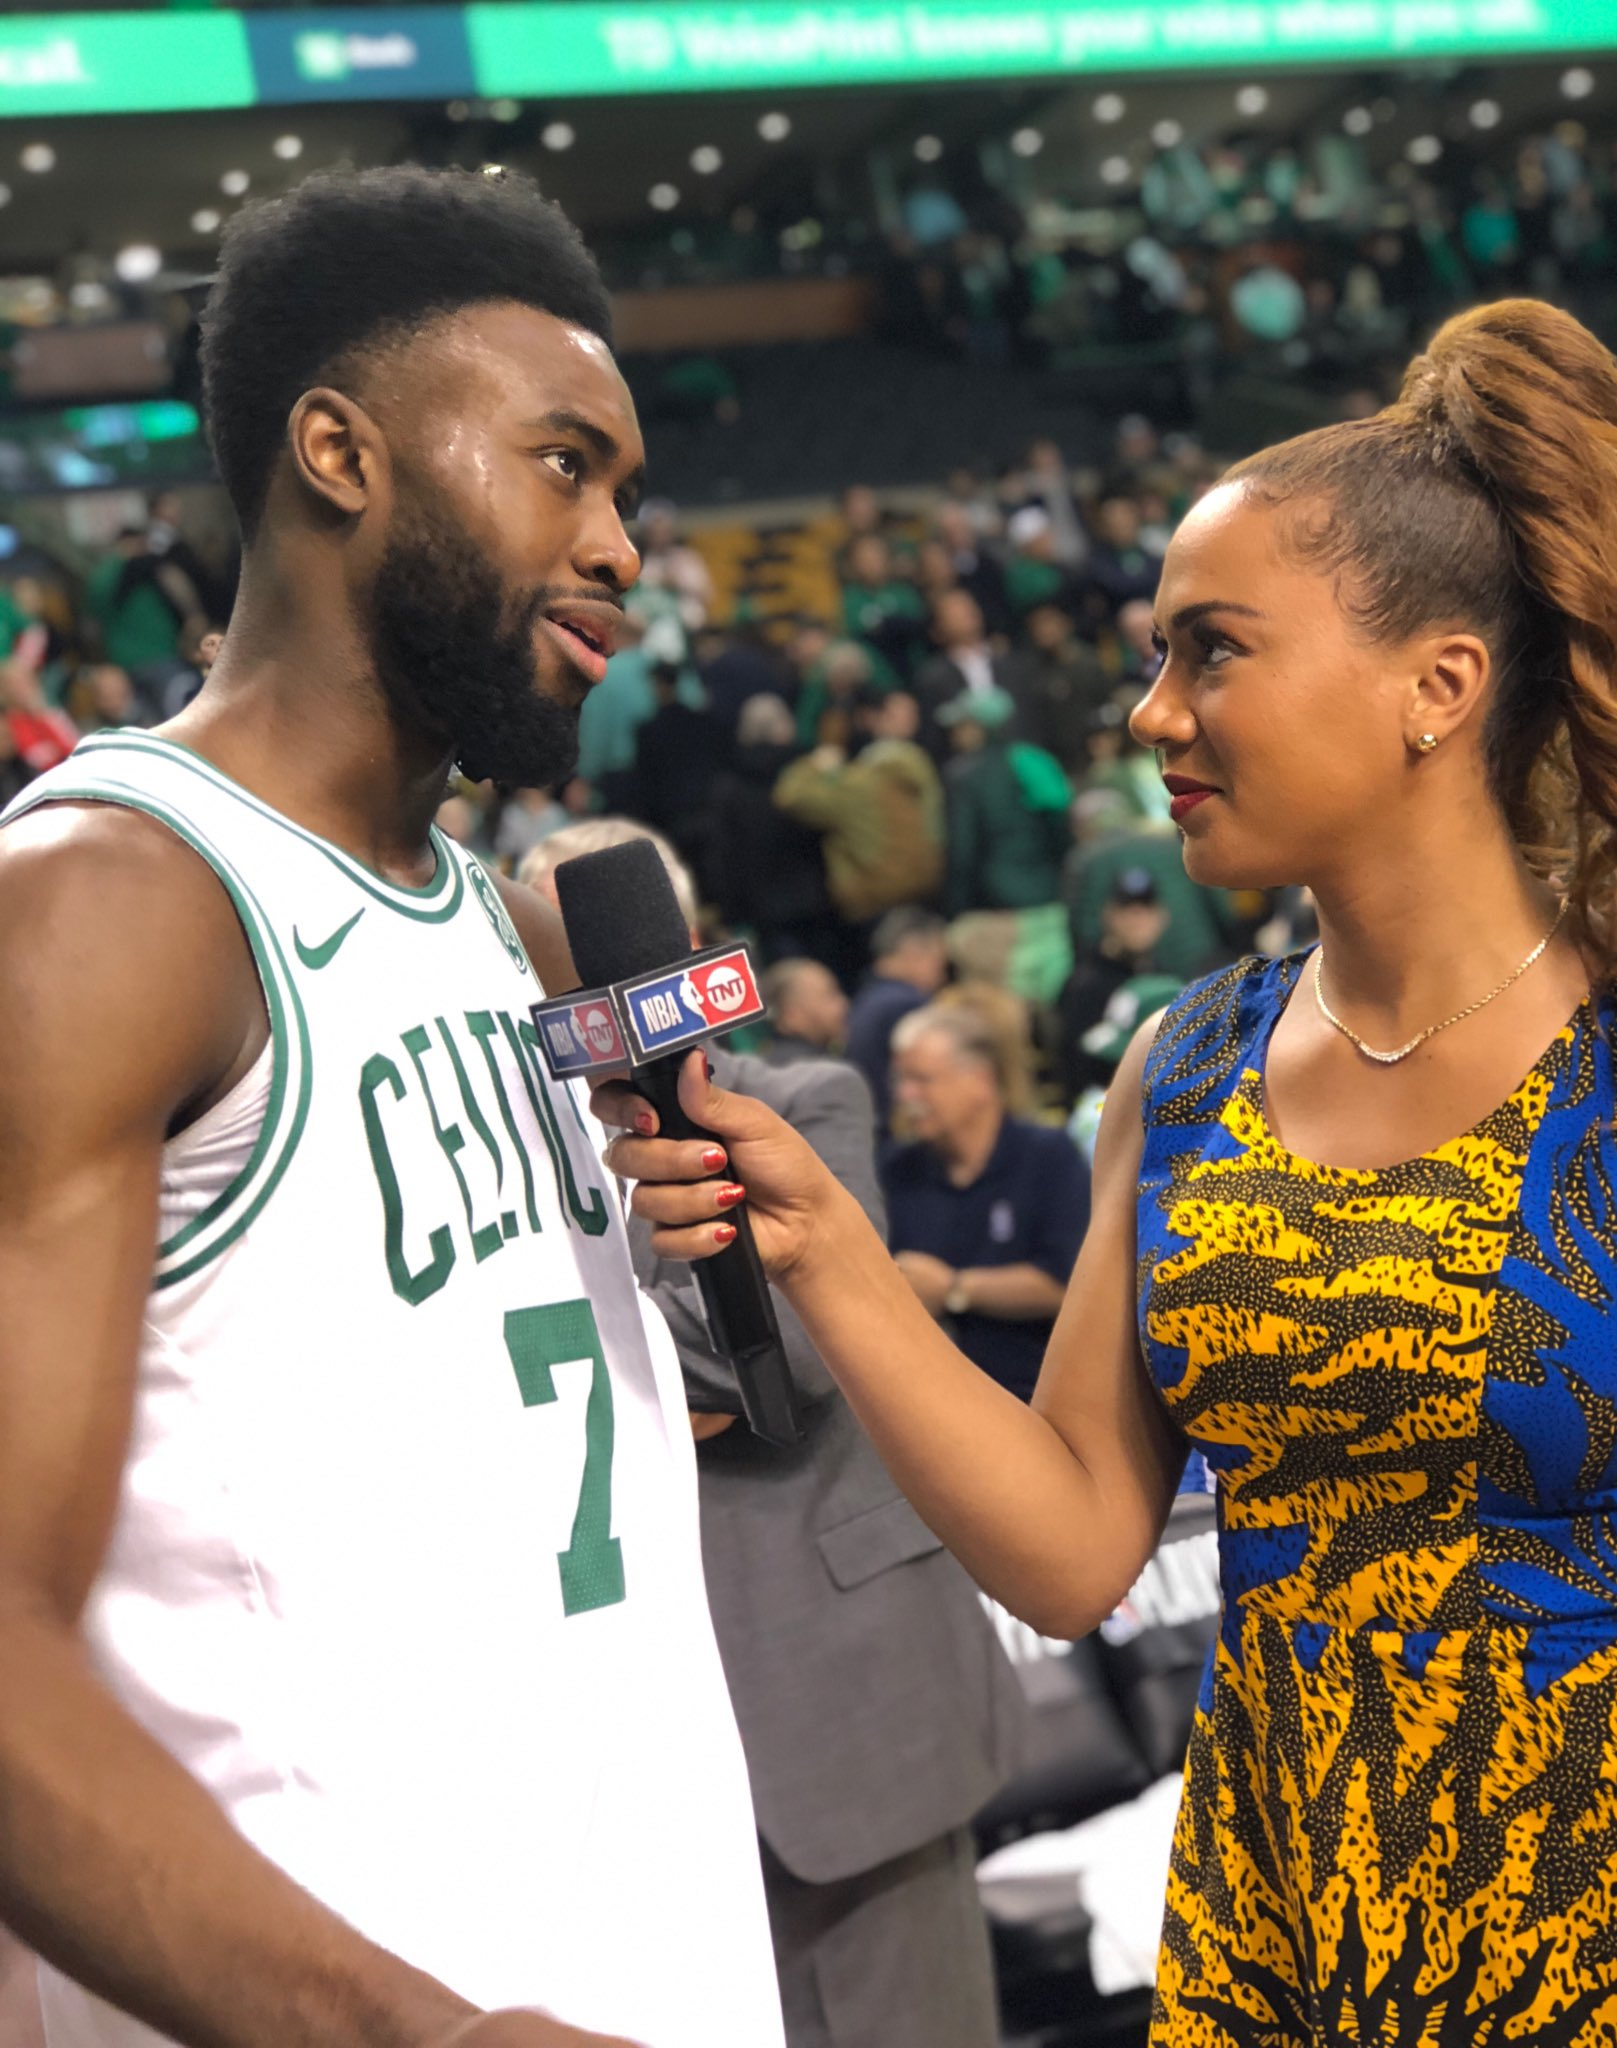 Jaylen Brown guides @celtics to 2-0 lead with 30 points! #CUsRise https://t.co/nntsQzaLFV